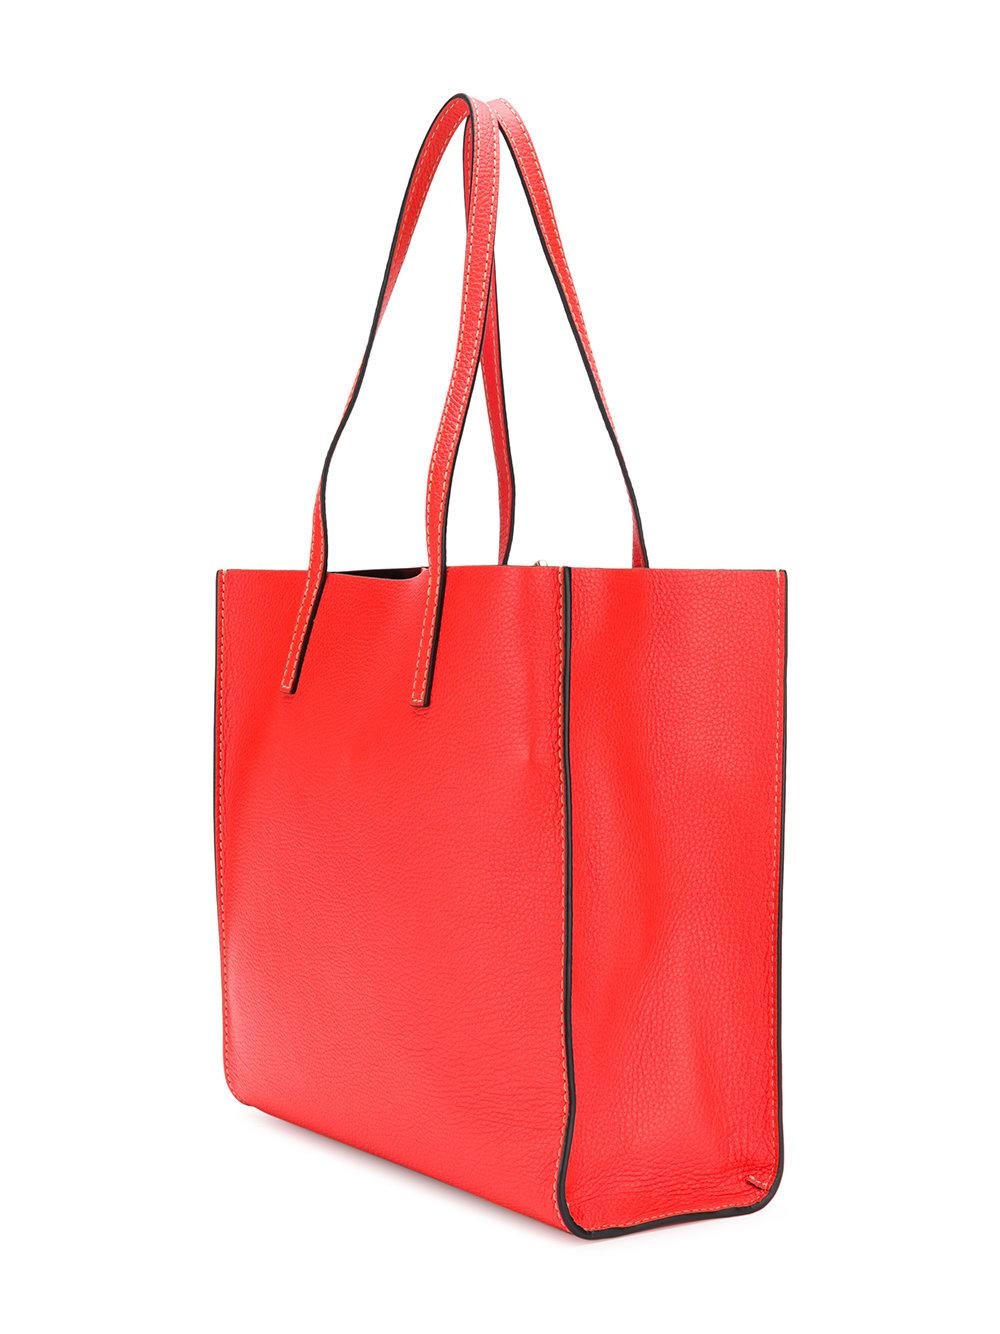 Marc Jacobs Leather The Bold Grind Shopper Tote Bag in Red